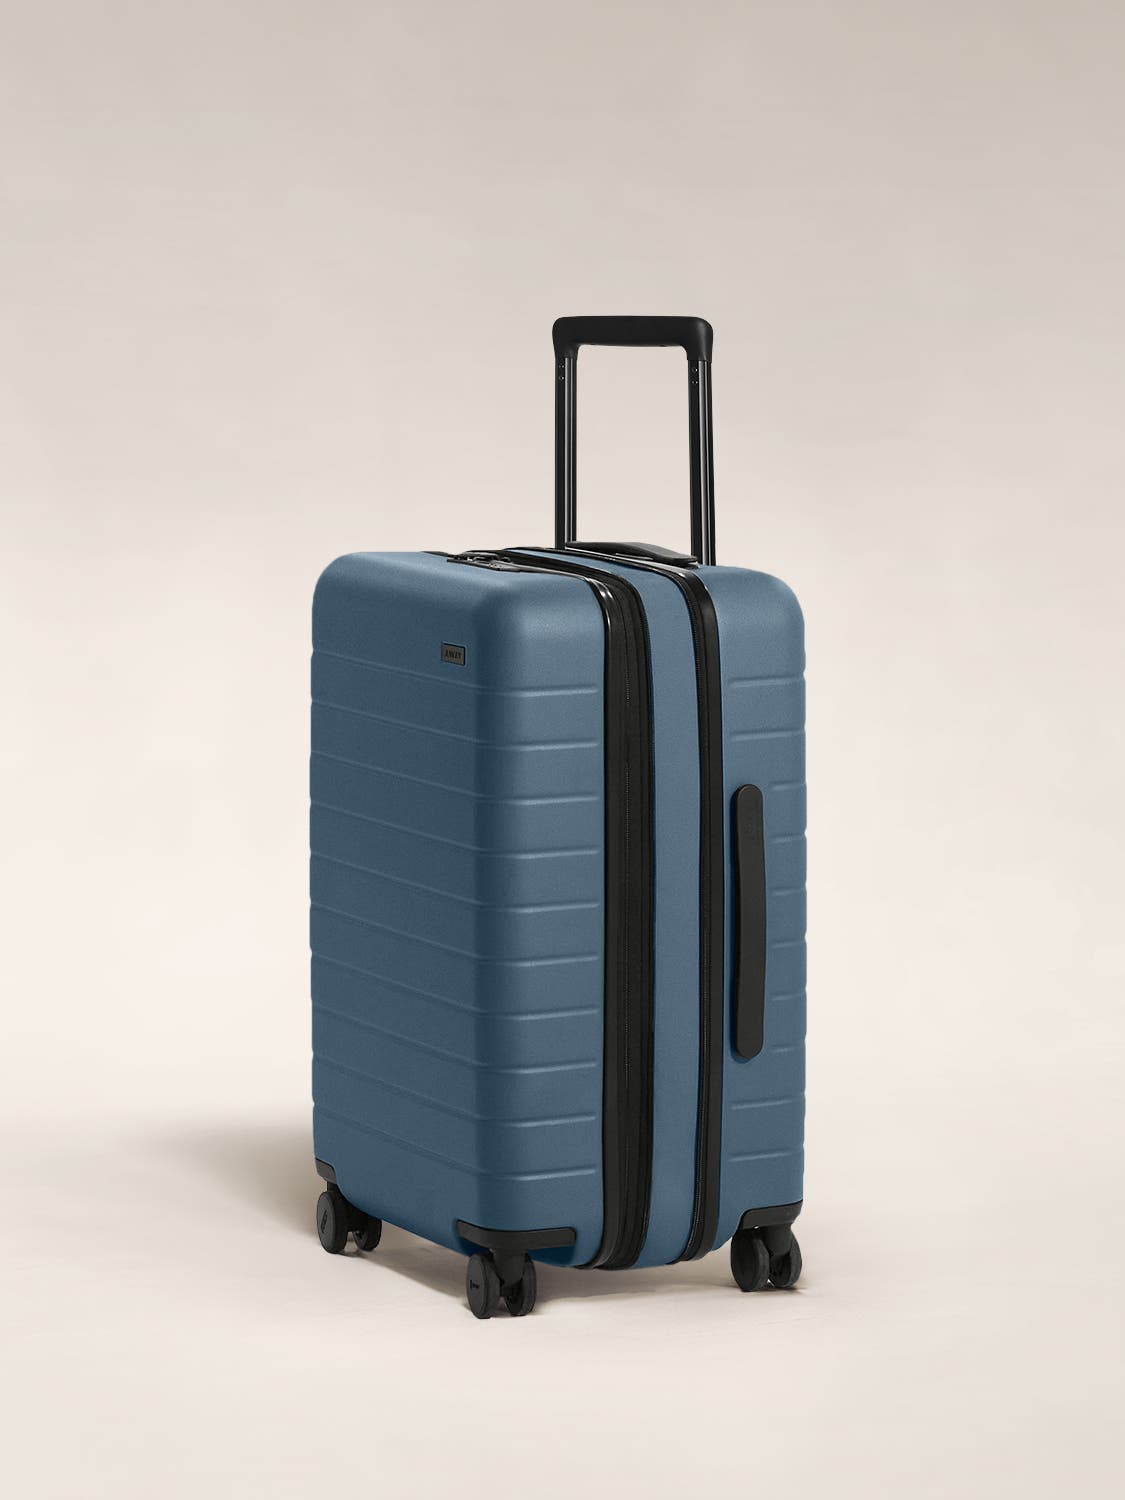 The Bigger Carry-On Flex in Coast shown at an angle with raised telescoping handle.